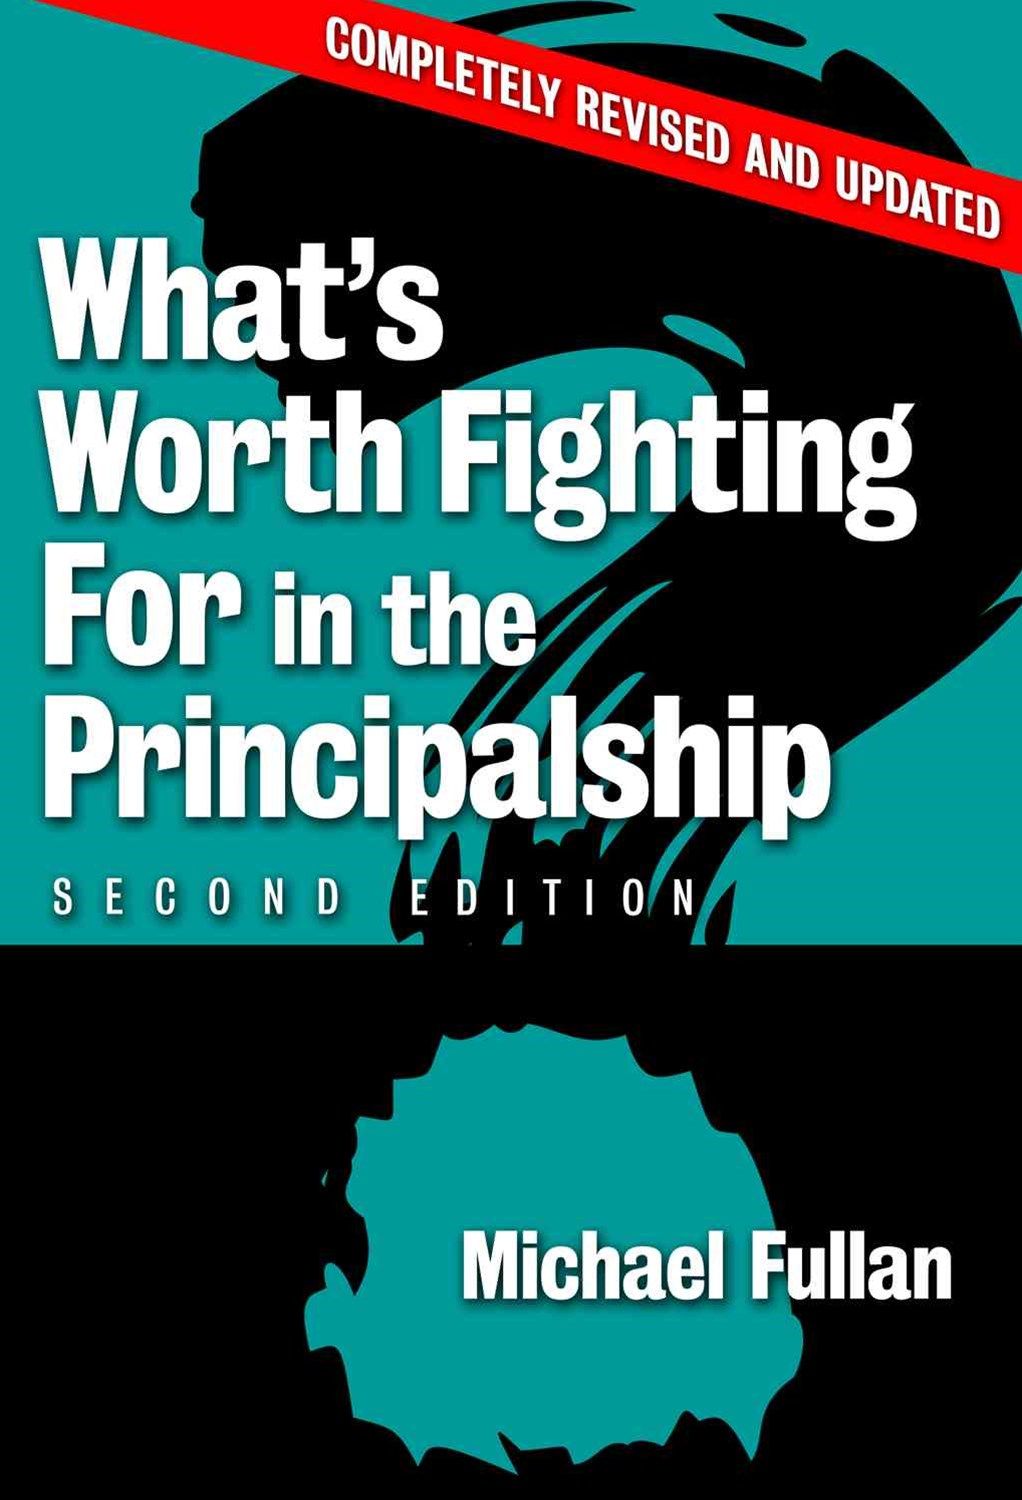 What's Worth Fighting for in the Principalship